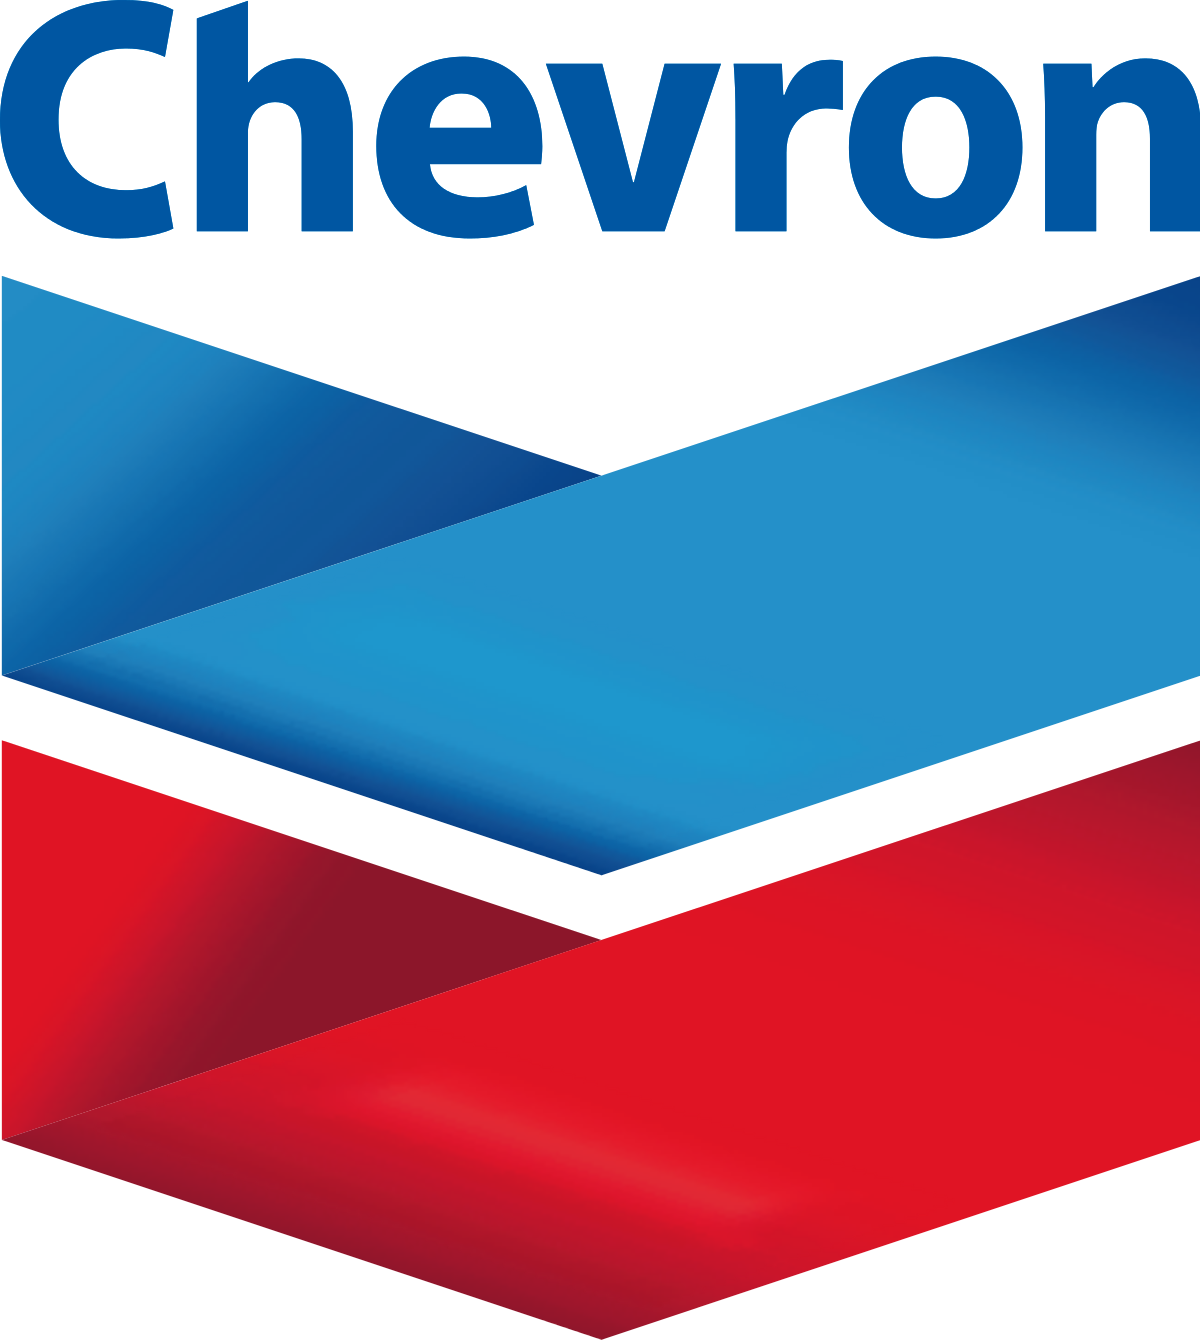 Chevron corporation wikipedia . Discussion clipart shareholder